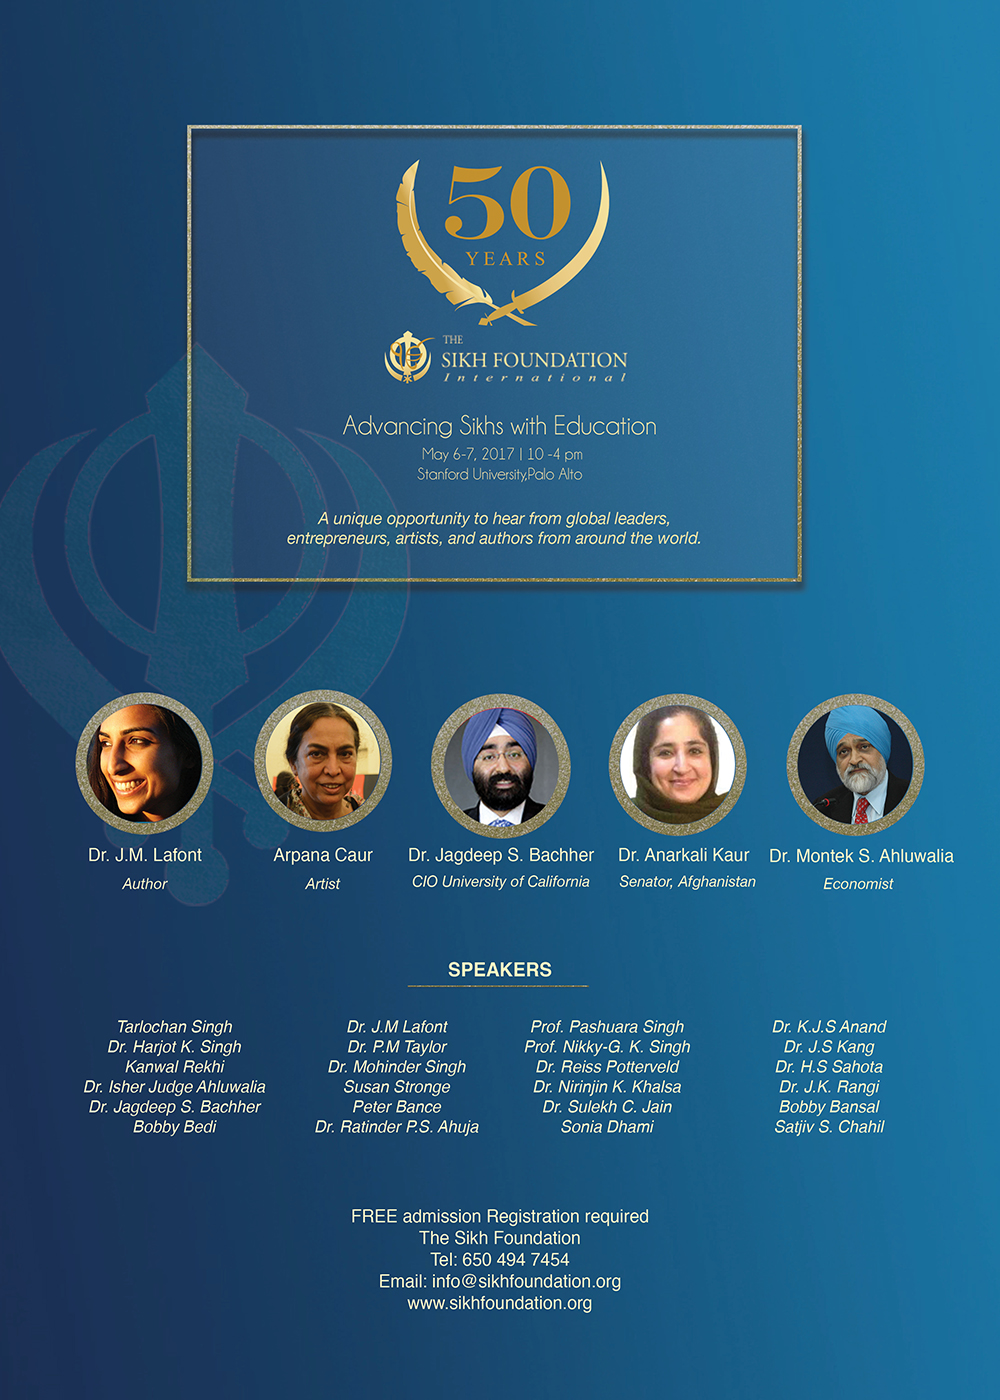 CONFERENCE: ADVANCING SIKHS WITH EDUCATION